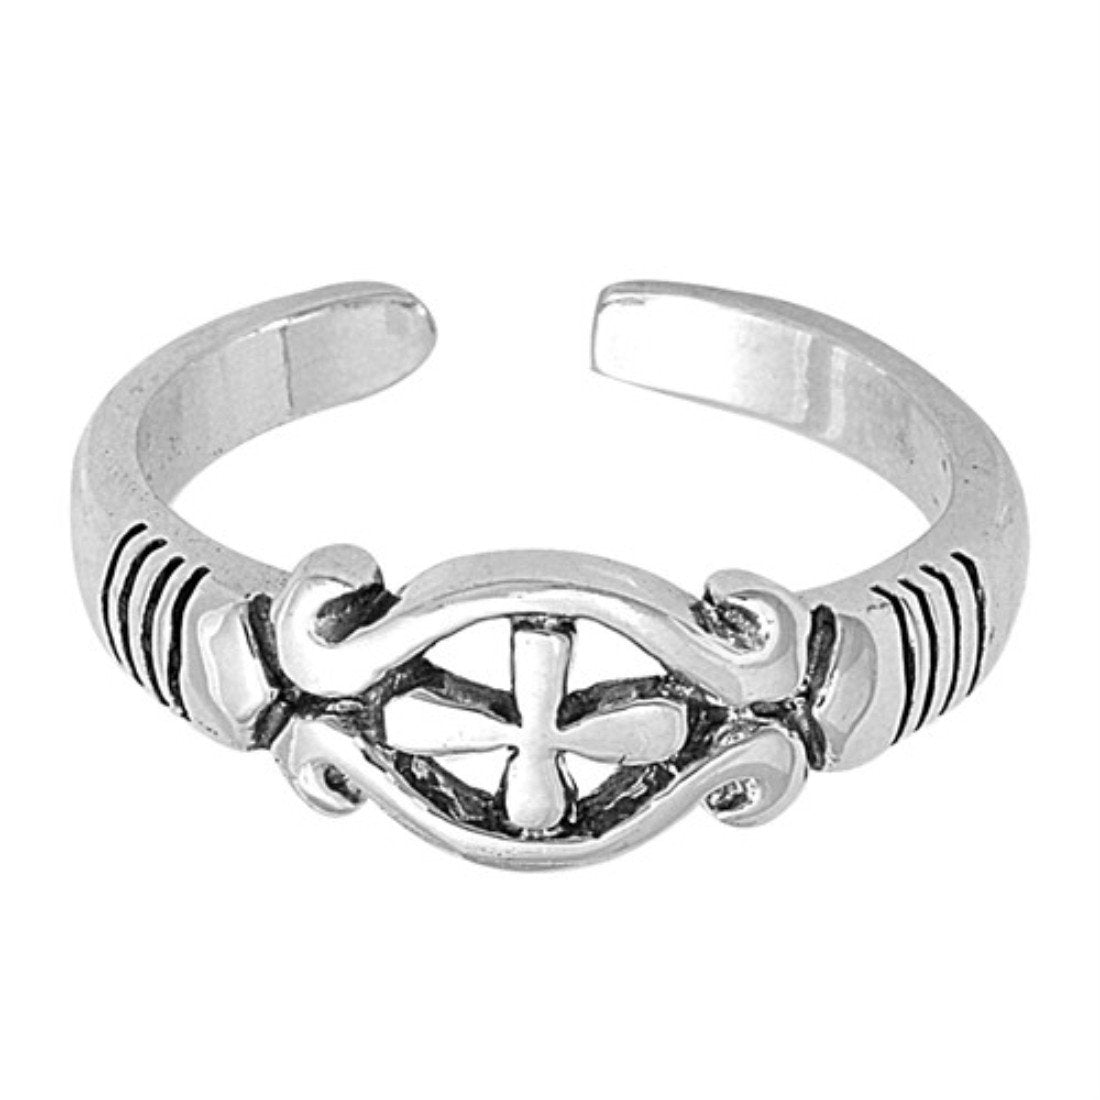 Cross Silver Toe Ring Band Adjustable 925 Sterling Silver (5mm)